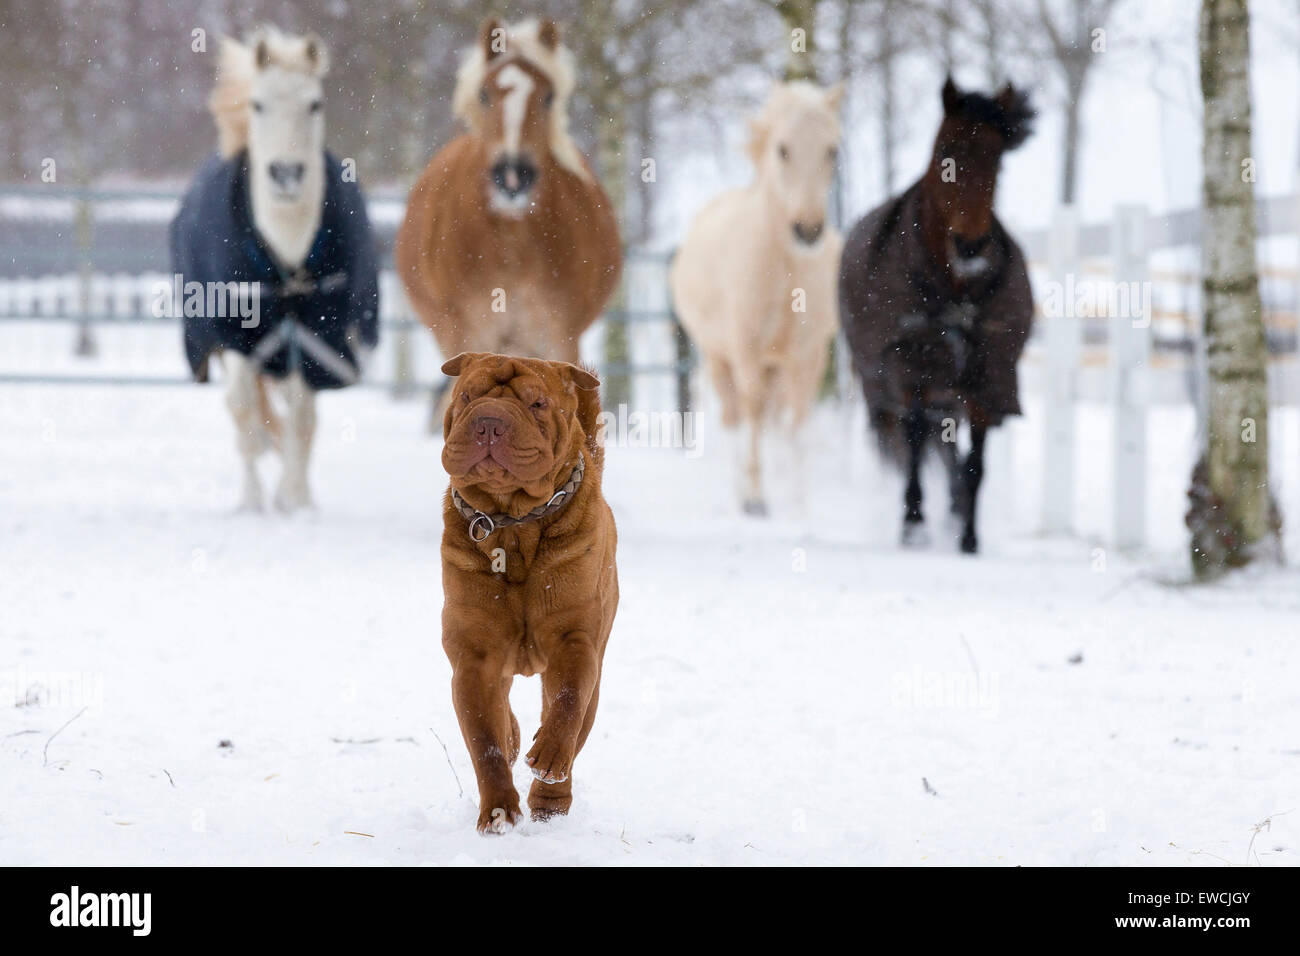 Four ponies following a Chinese Shar-Pei on a snowy pasture. Germany - Stock Image